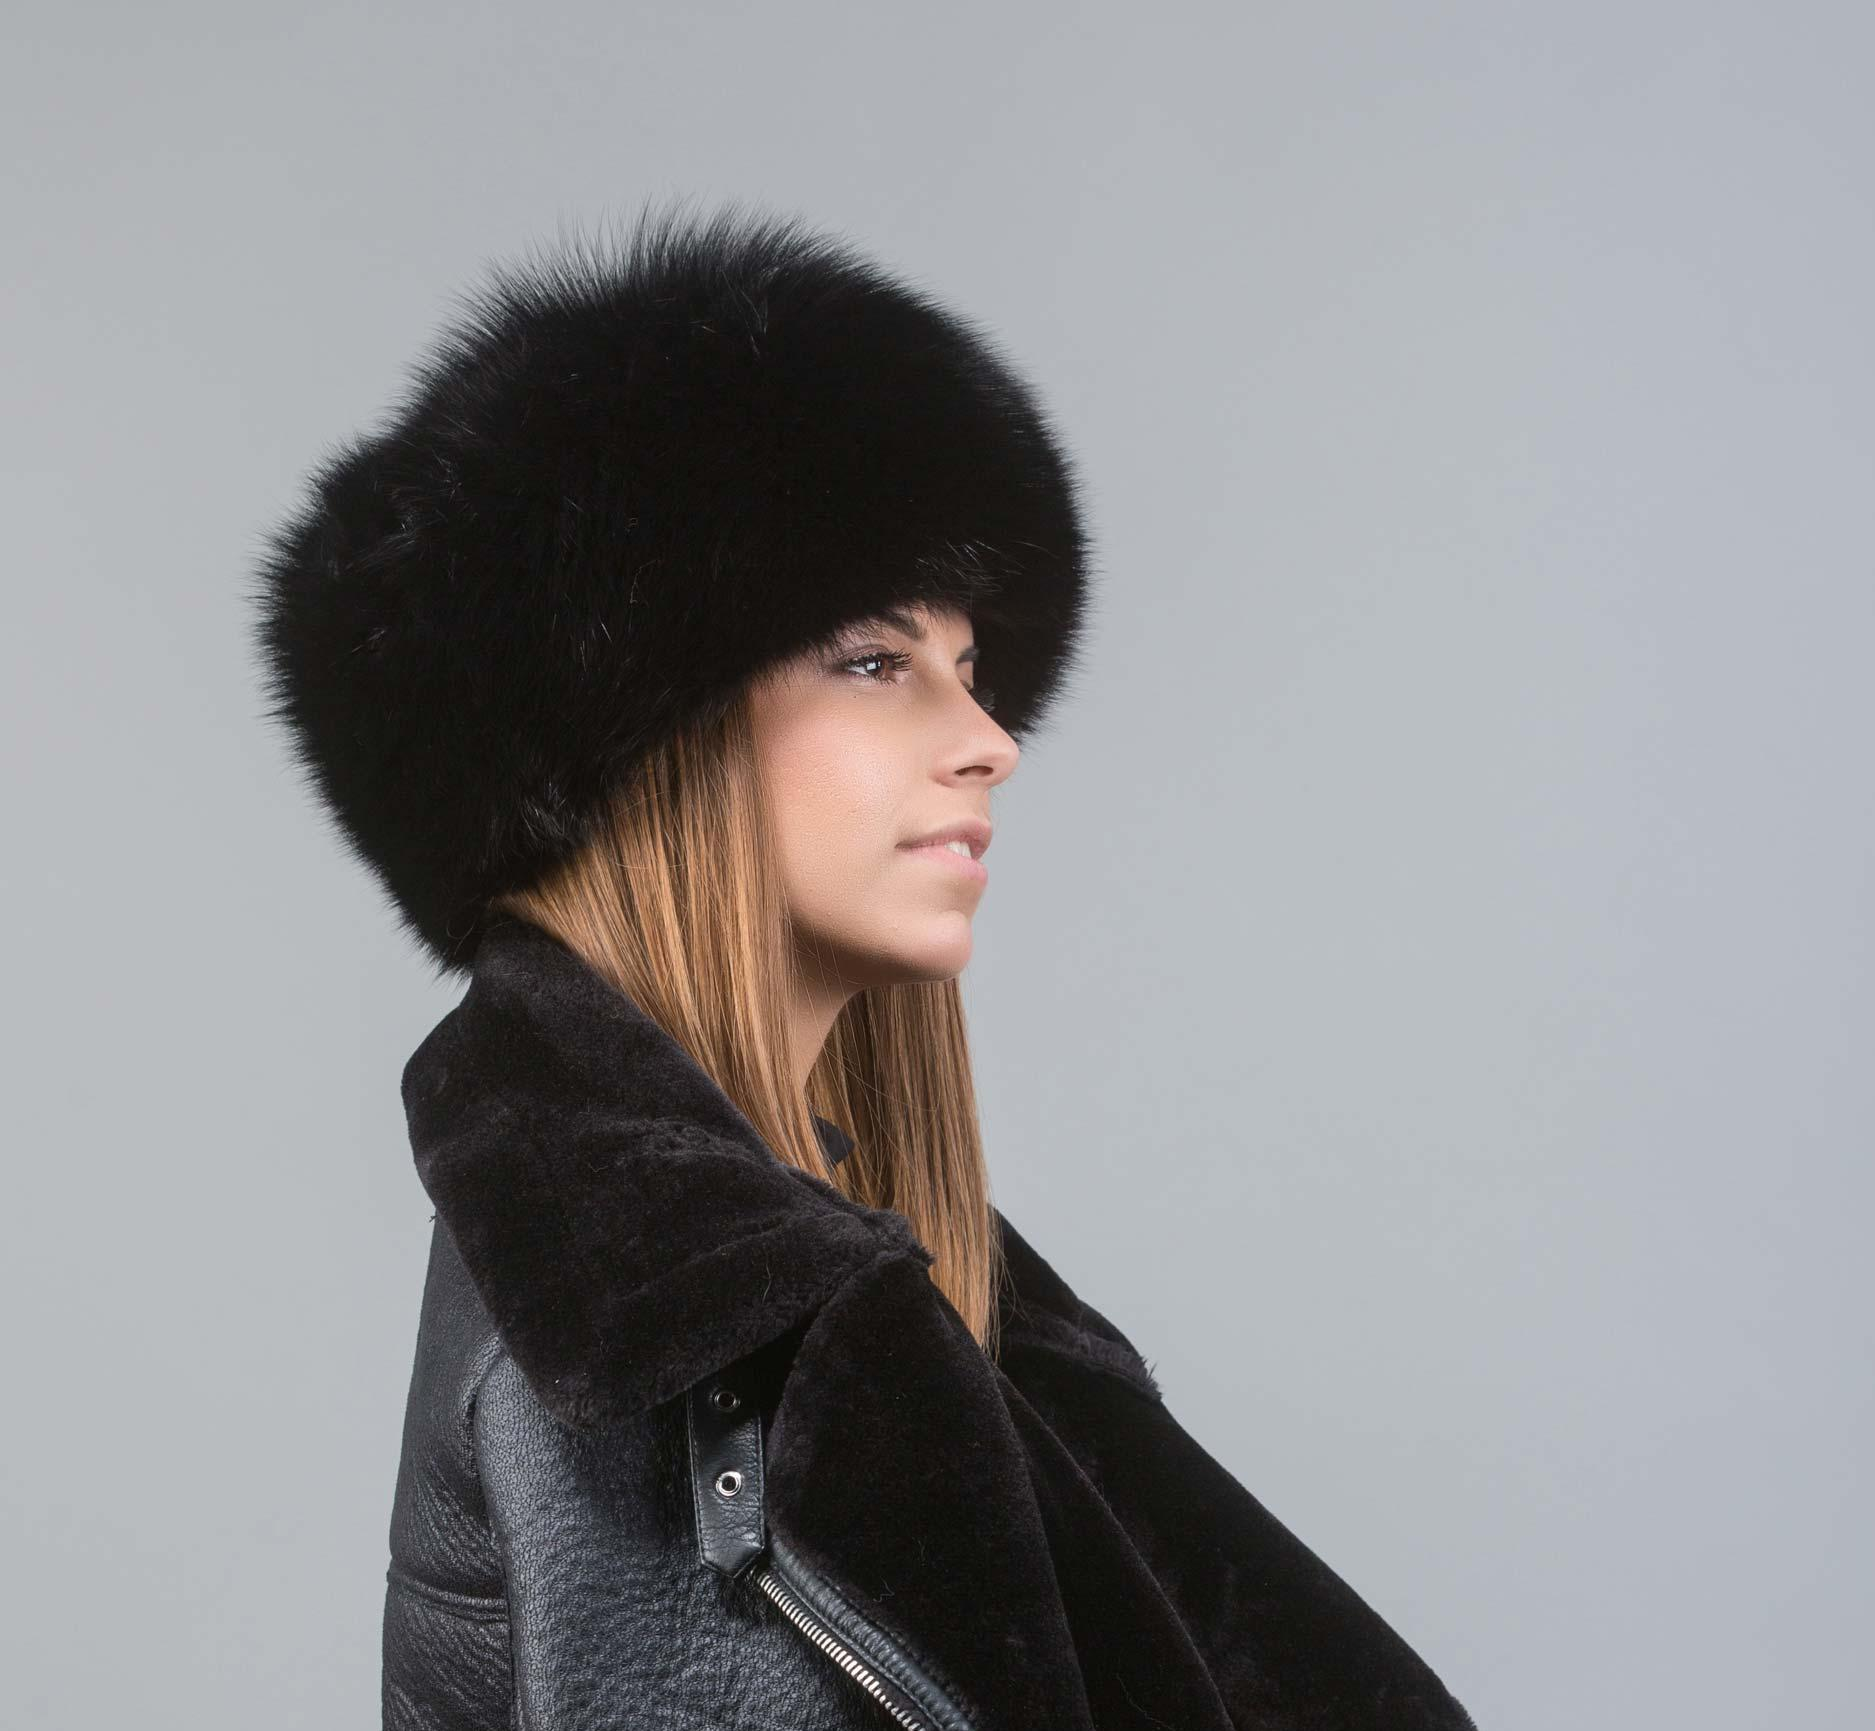 Black Fur Russian Hat . 100% Real Fur Accessories - Haute Acorn dec1b1110a4